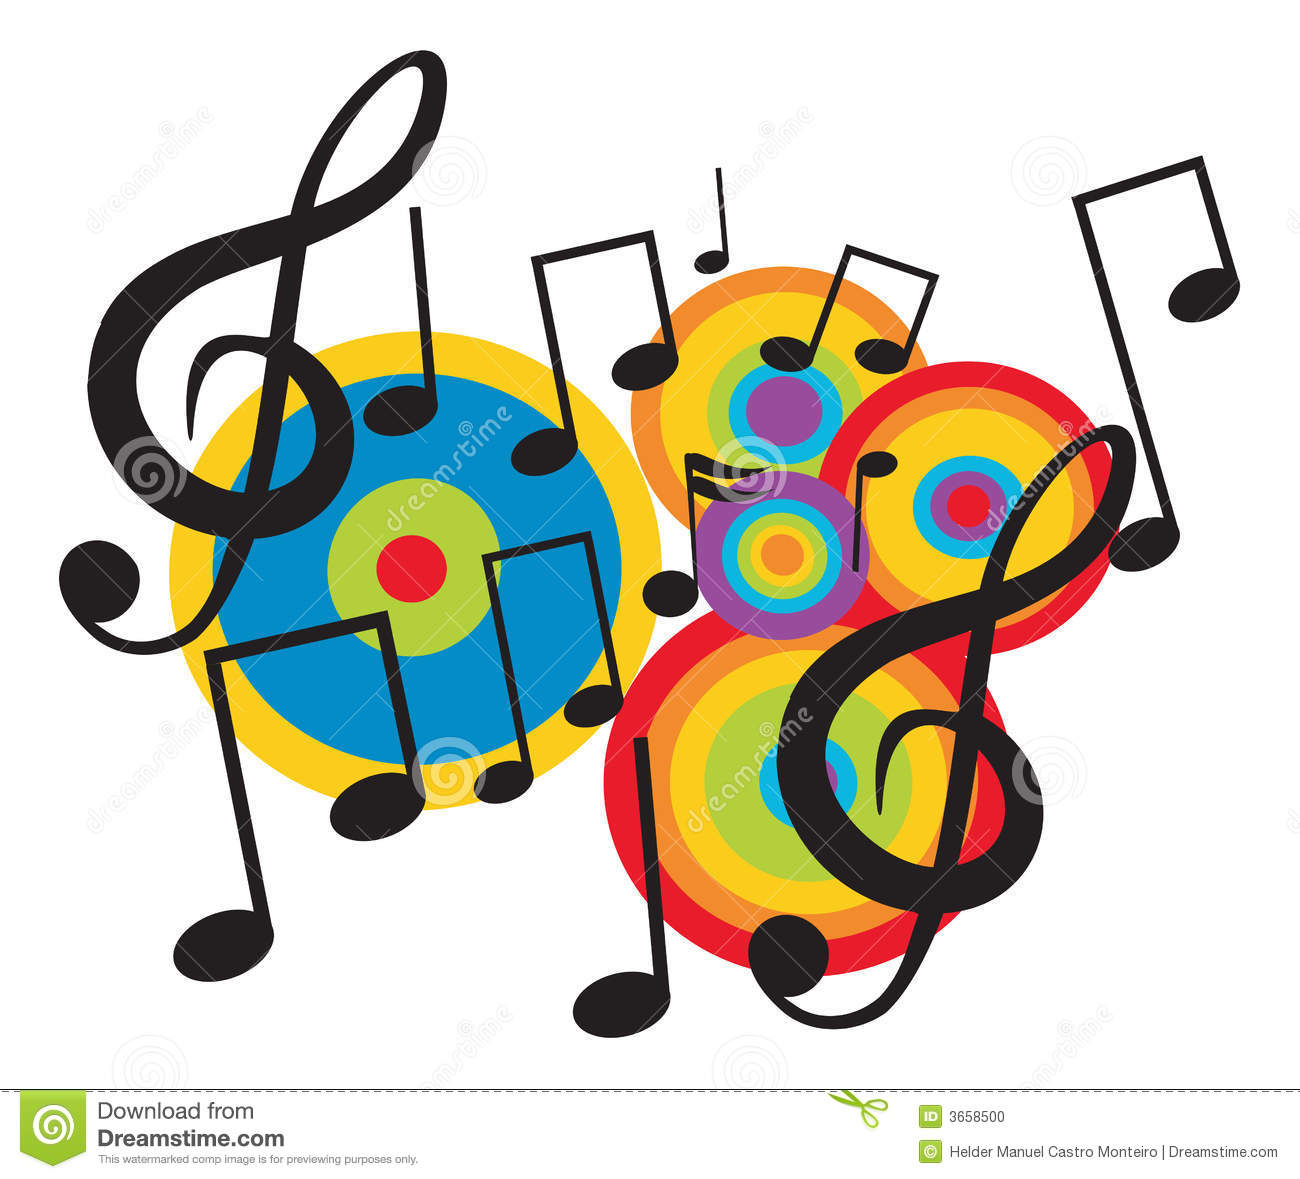 music theme clipart musica musical vector festival dreamstime concert note imagenes notes danza songs arte band para el singers fun